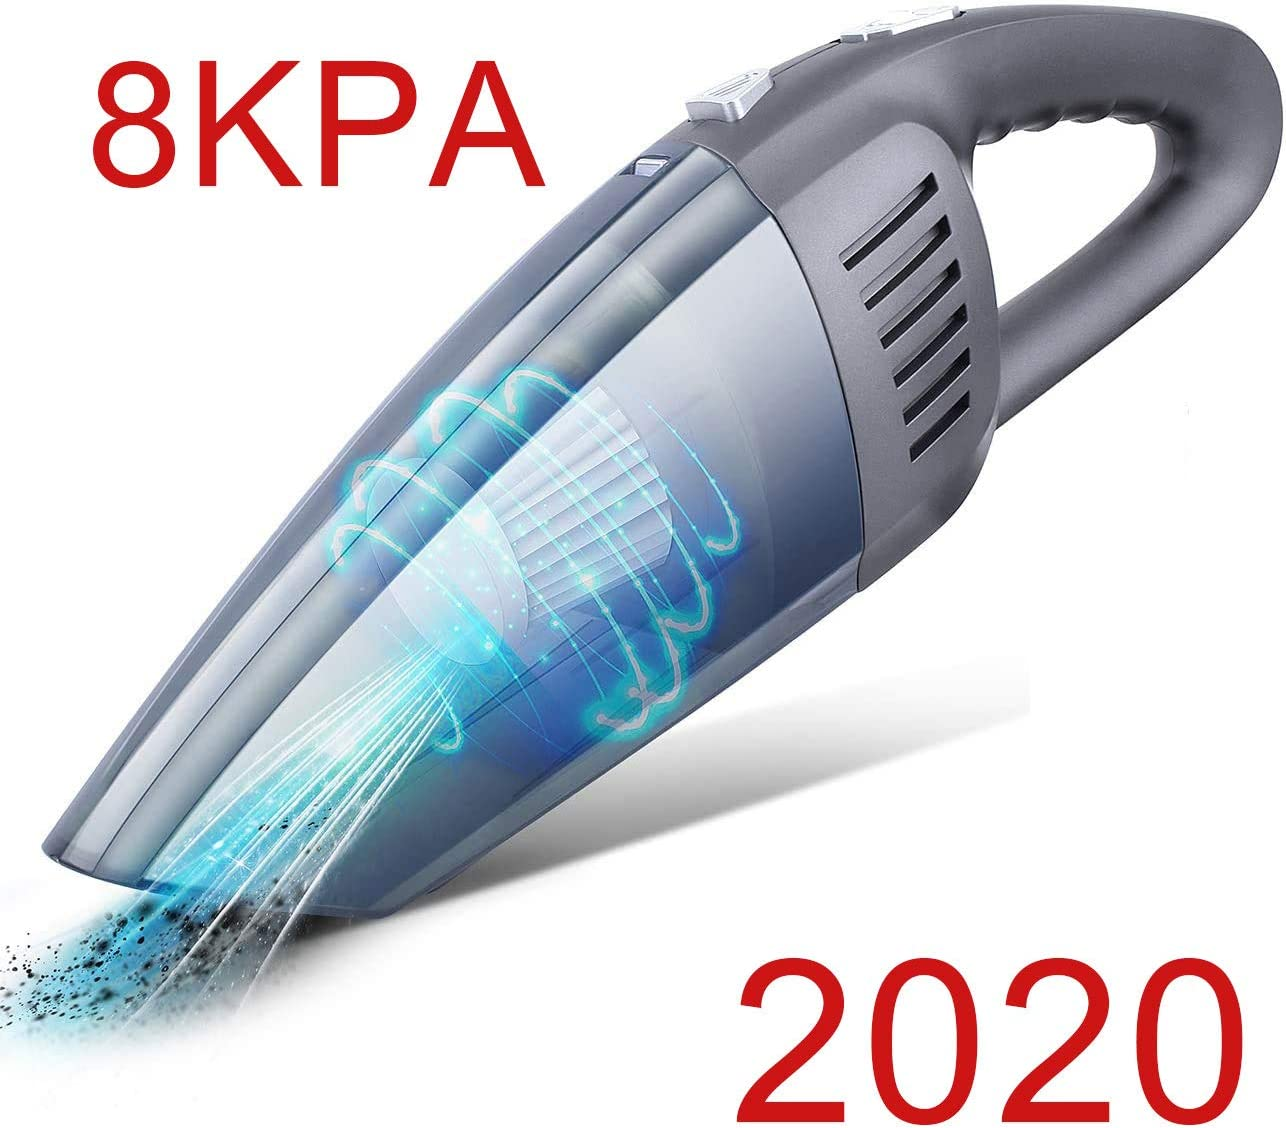 Handheld Vacuum, Handheld Vacuum Cleaner Cordless 8Kpa Strong Suction Powered by Li-ion Battery Rechargeable Quick Charge Tech, Mini Vacuum for Home and Car